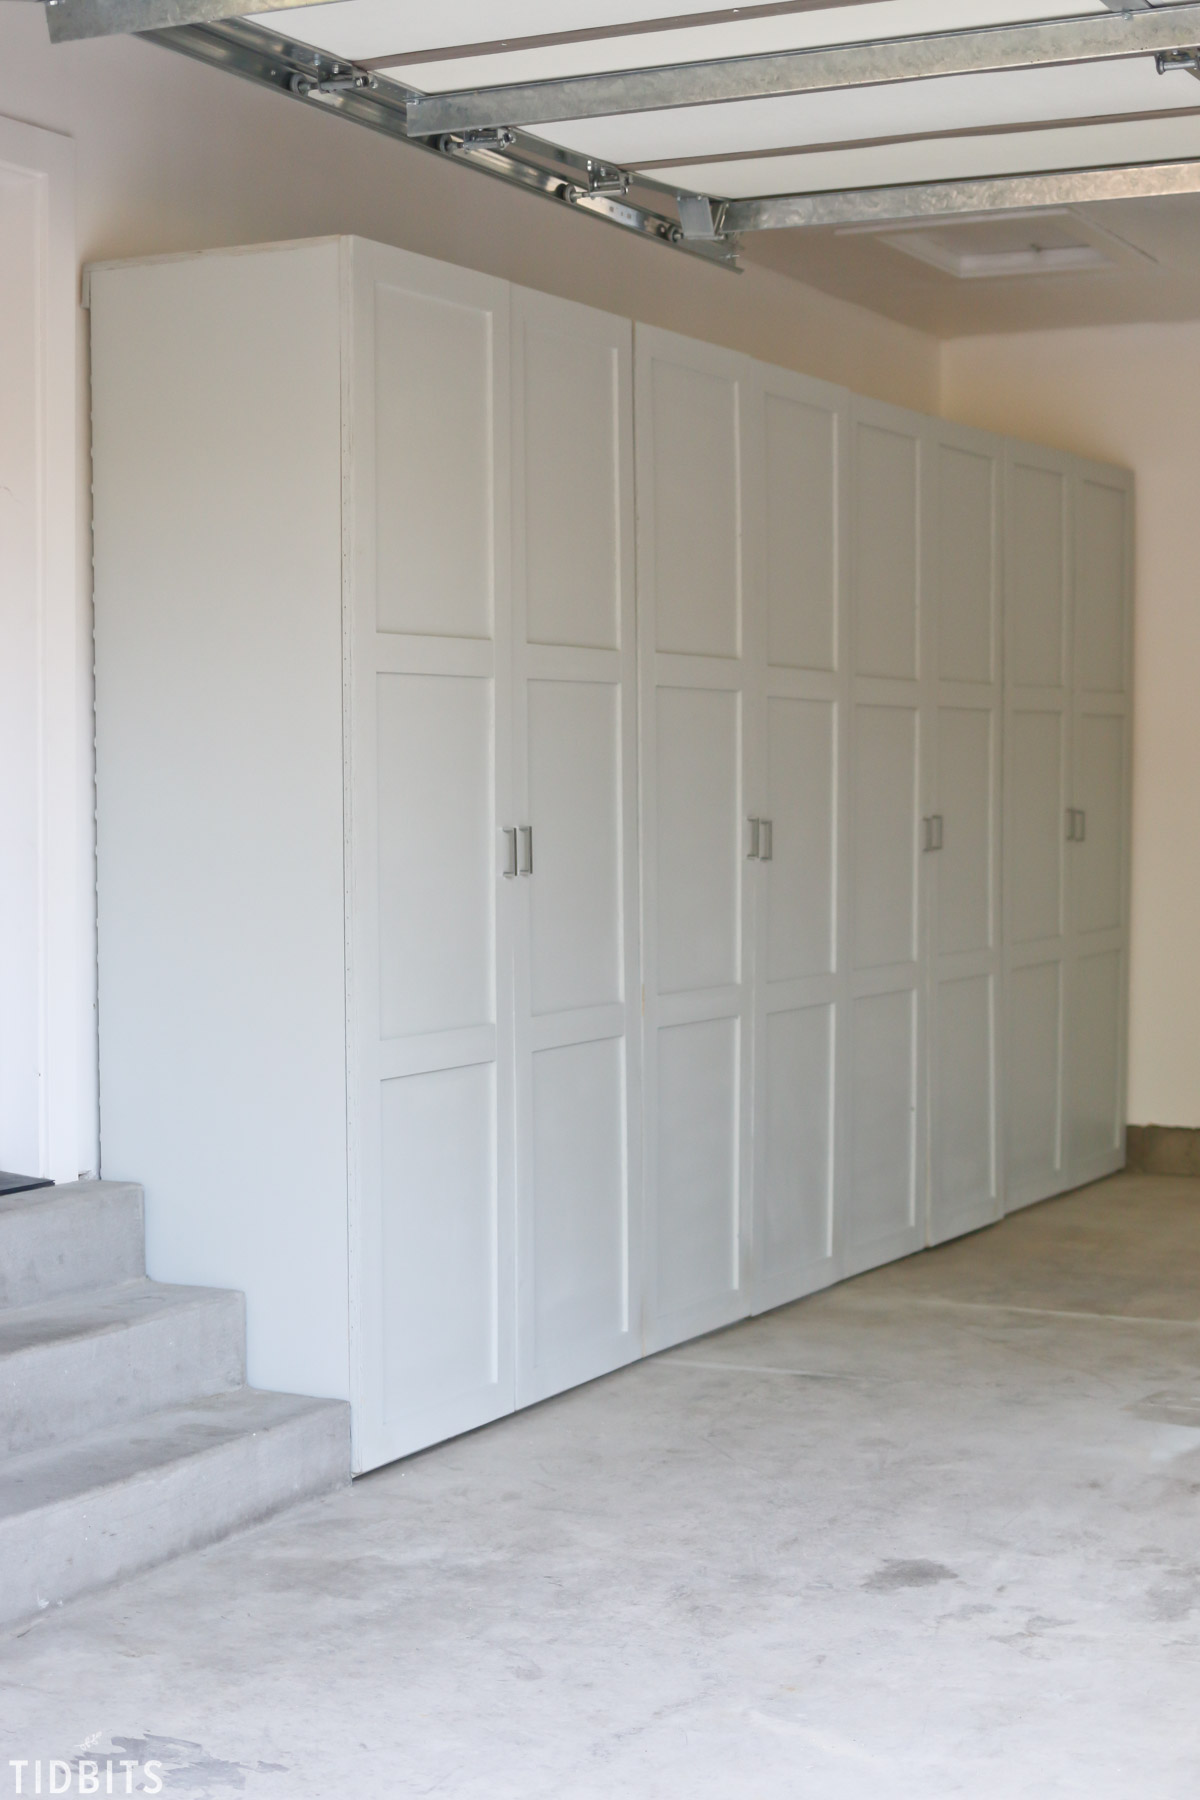 garage storage cabinets free building plans tidbits rh tidbits cami com garage storage cabinet plans or ideas diy garage storage cabinet plans